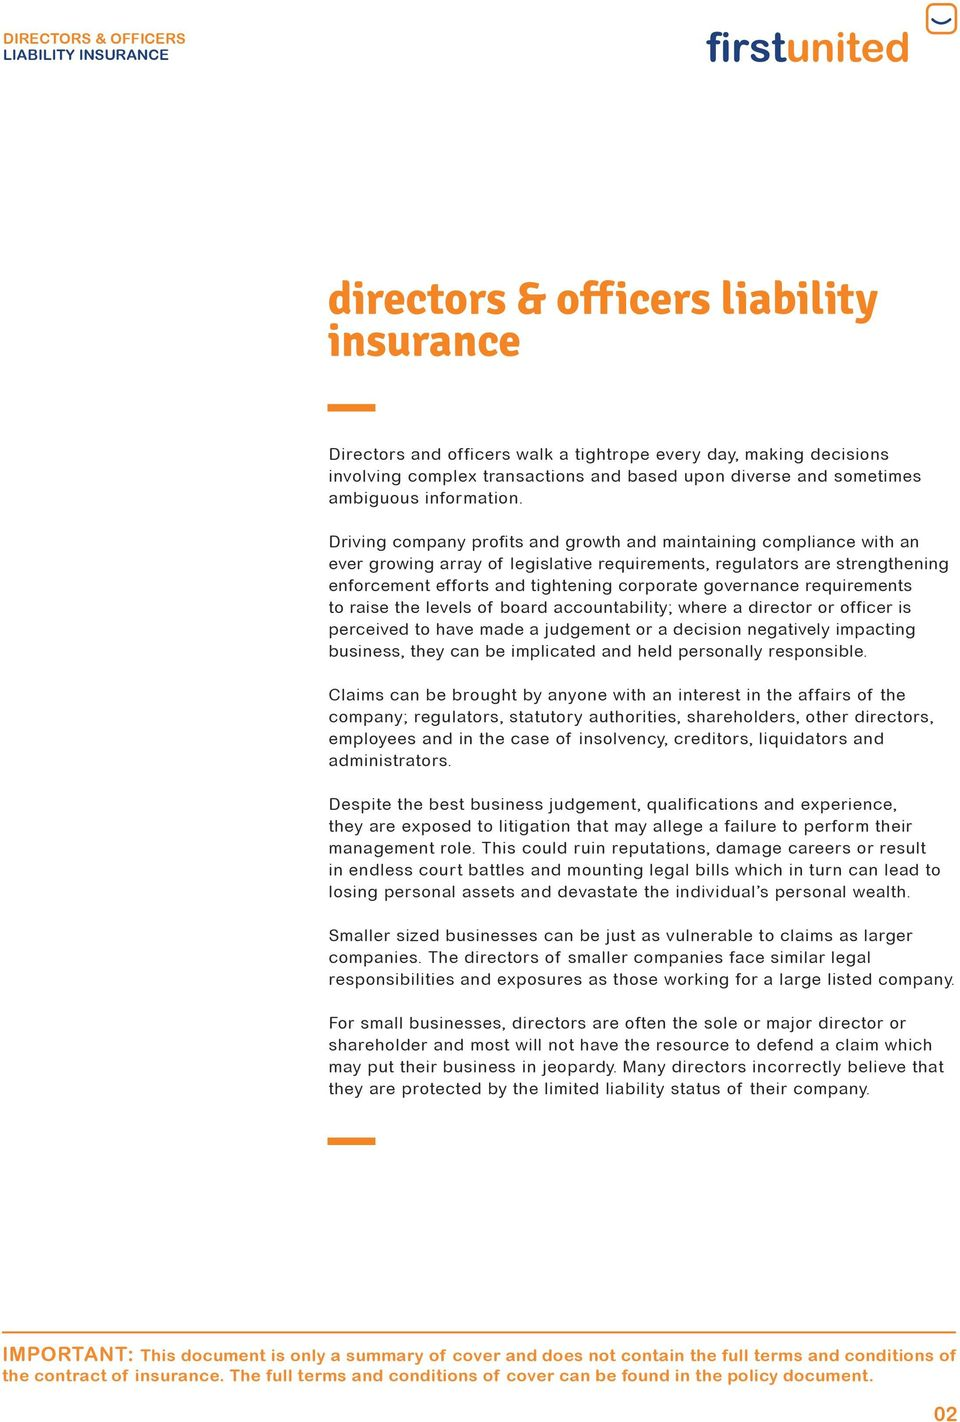 governance requirements to raise the levels of board accountability; where a director or officer is perceived to have made a judgement or a decision negatively impacting business, they can be